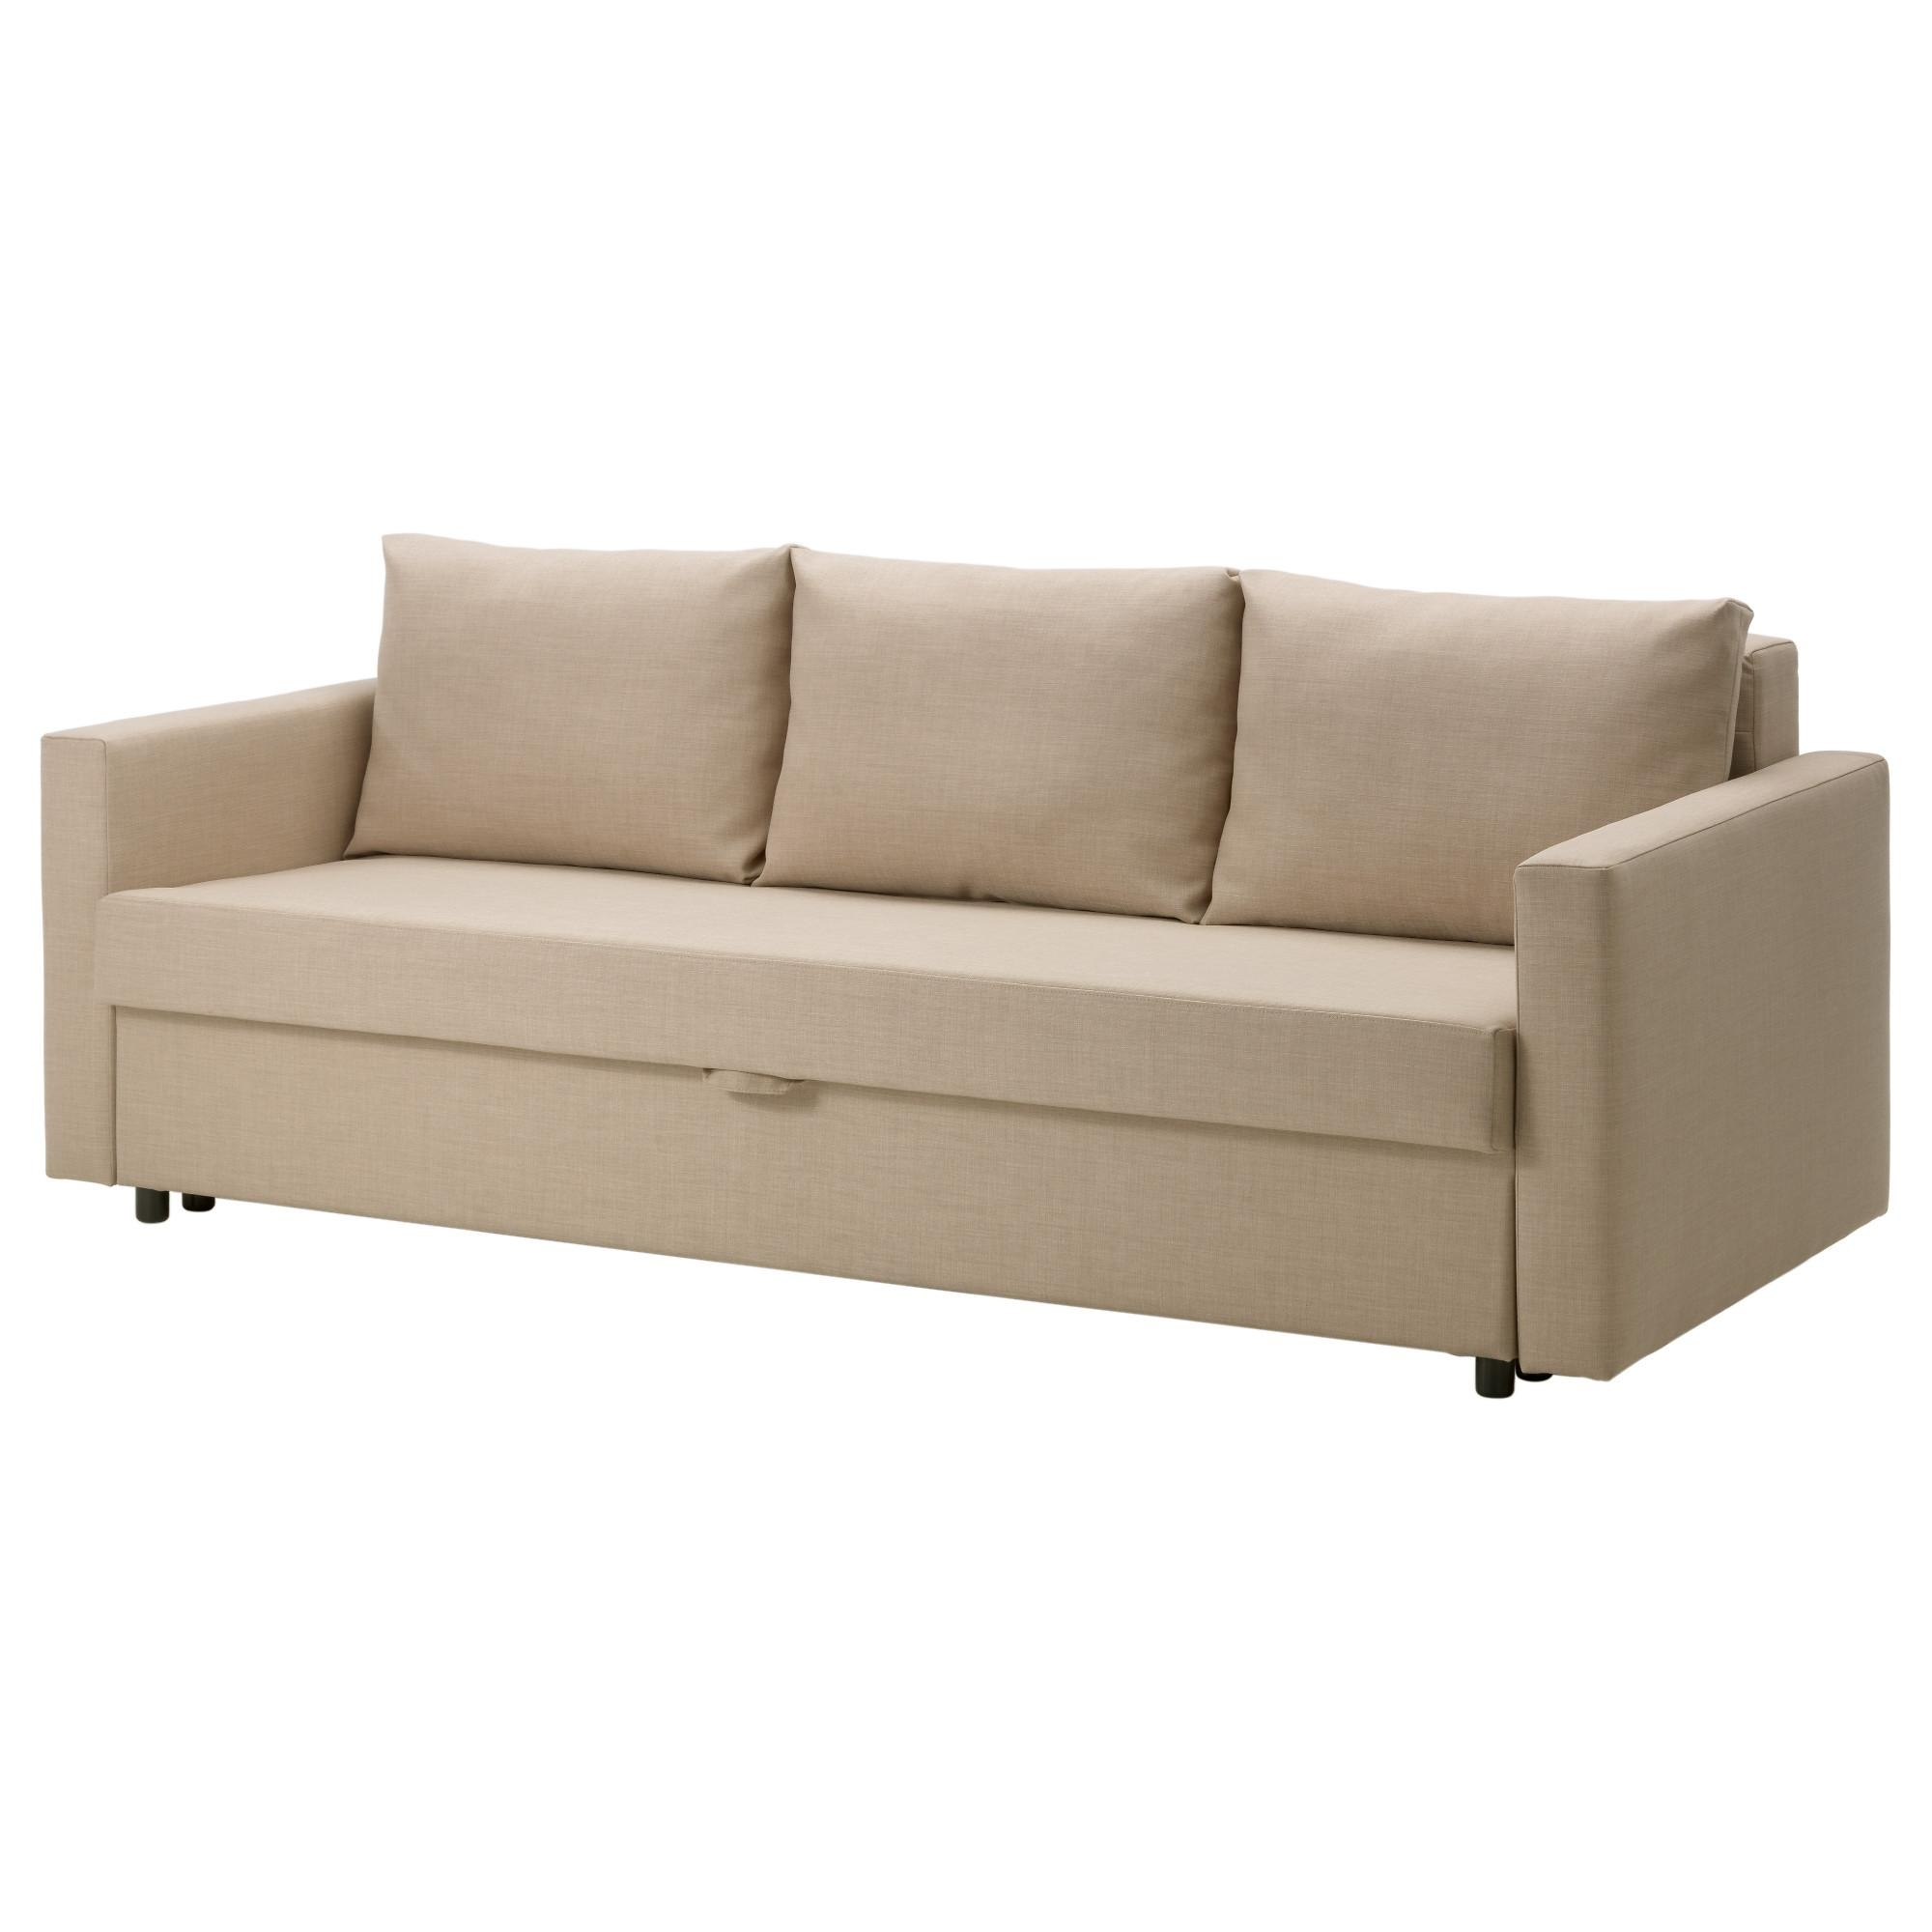 Furniture: Ikea Sofa Sleeper For Modern Minimalist Room Decor Throughout Convertible Queen Sofas (Image 10 of 20)